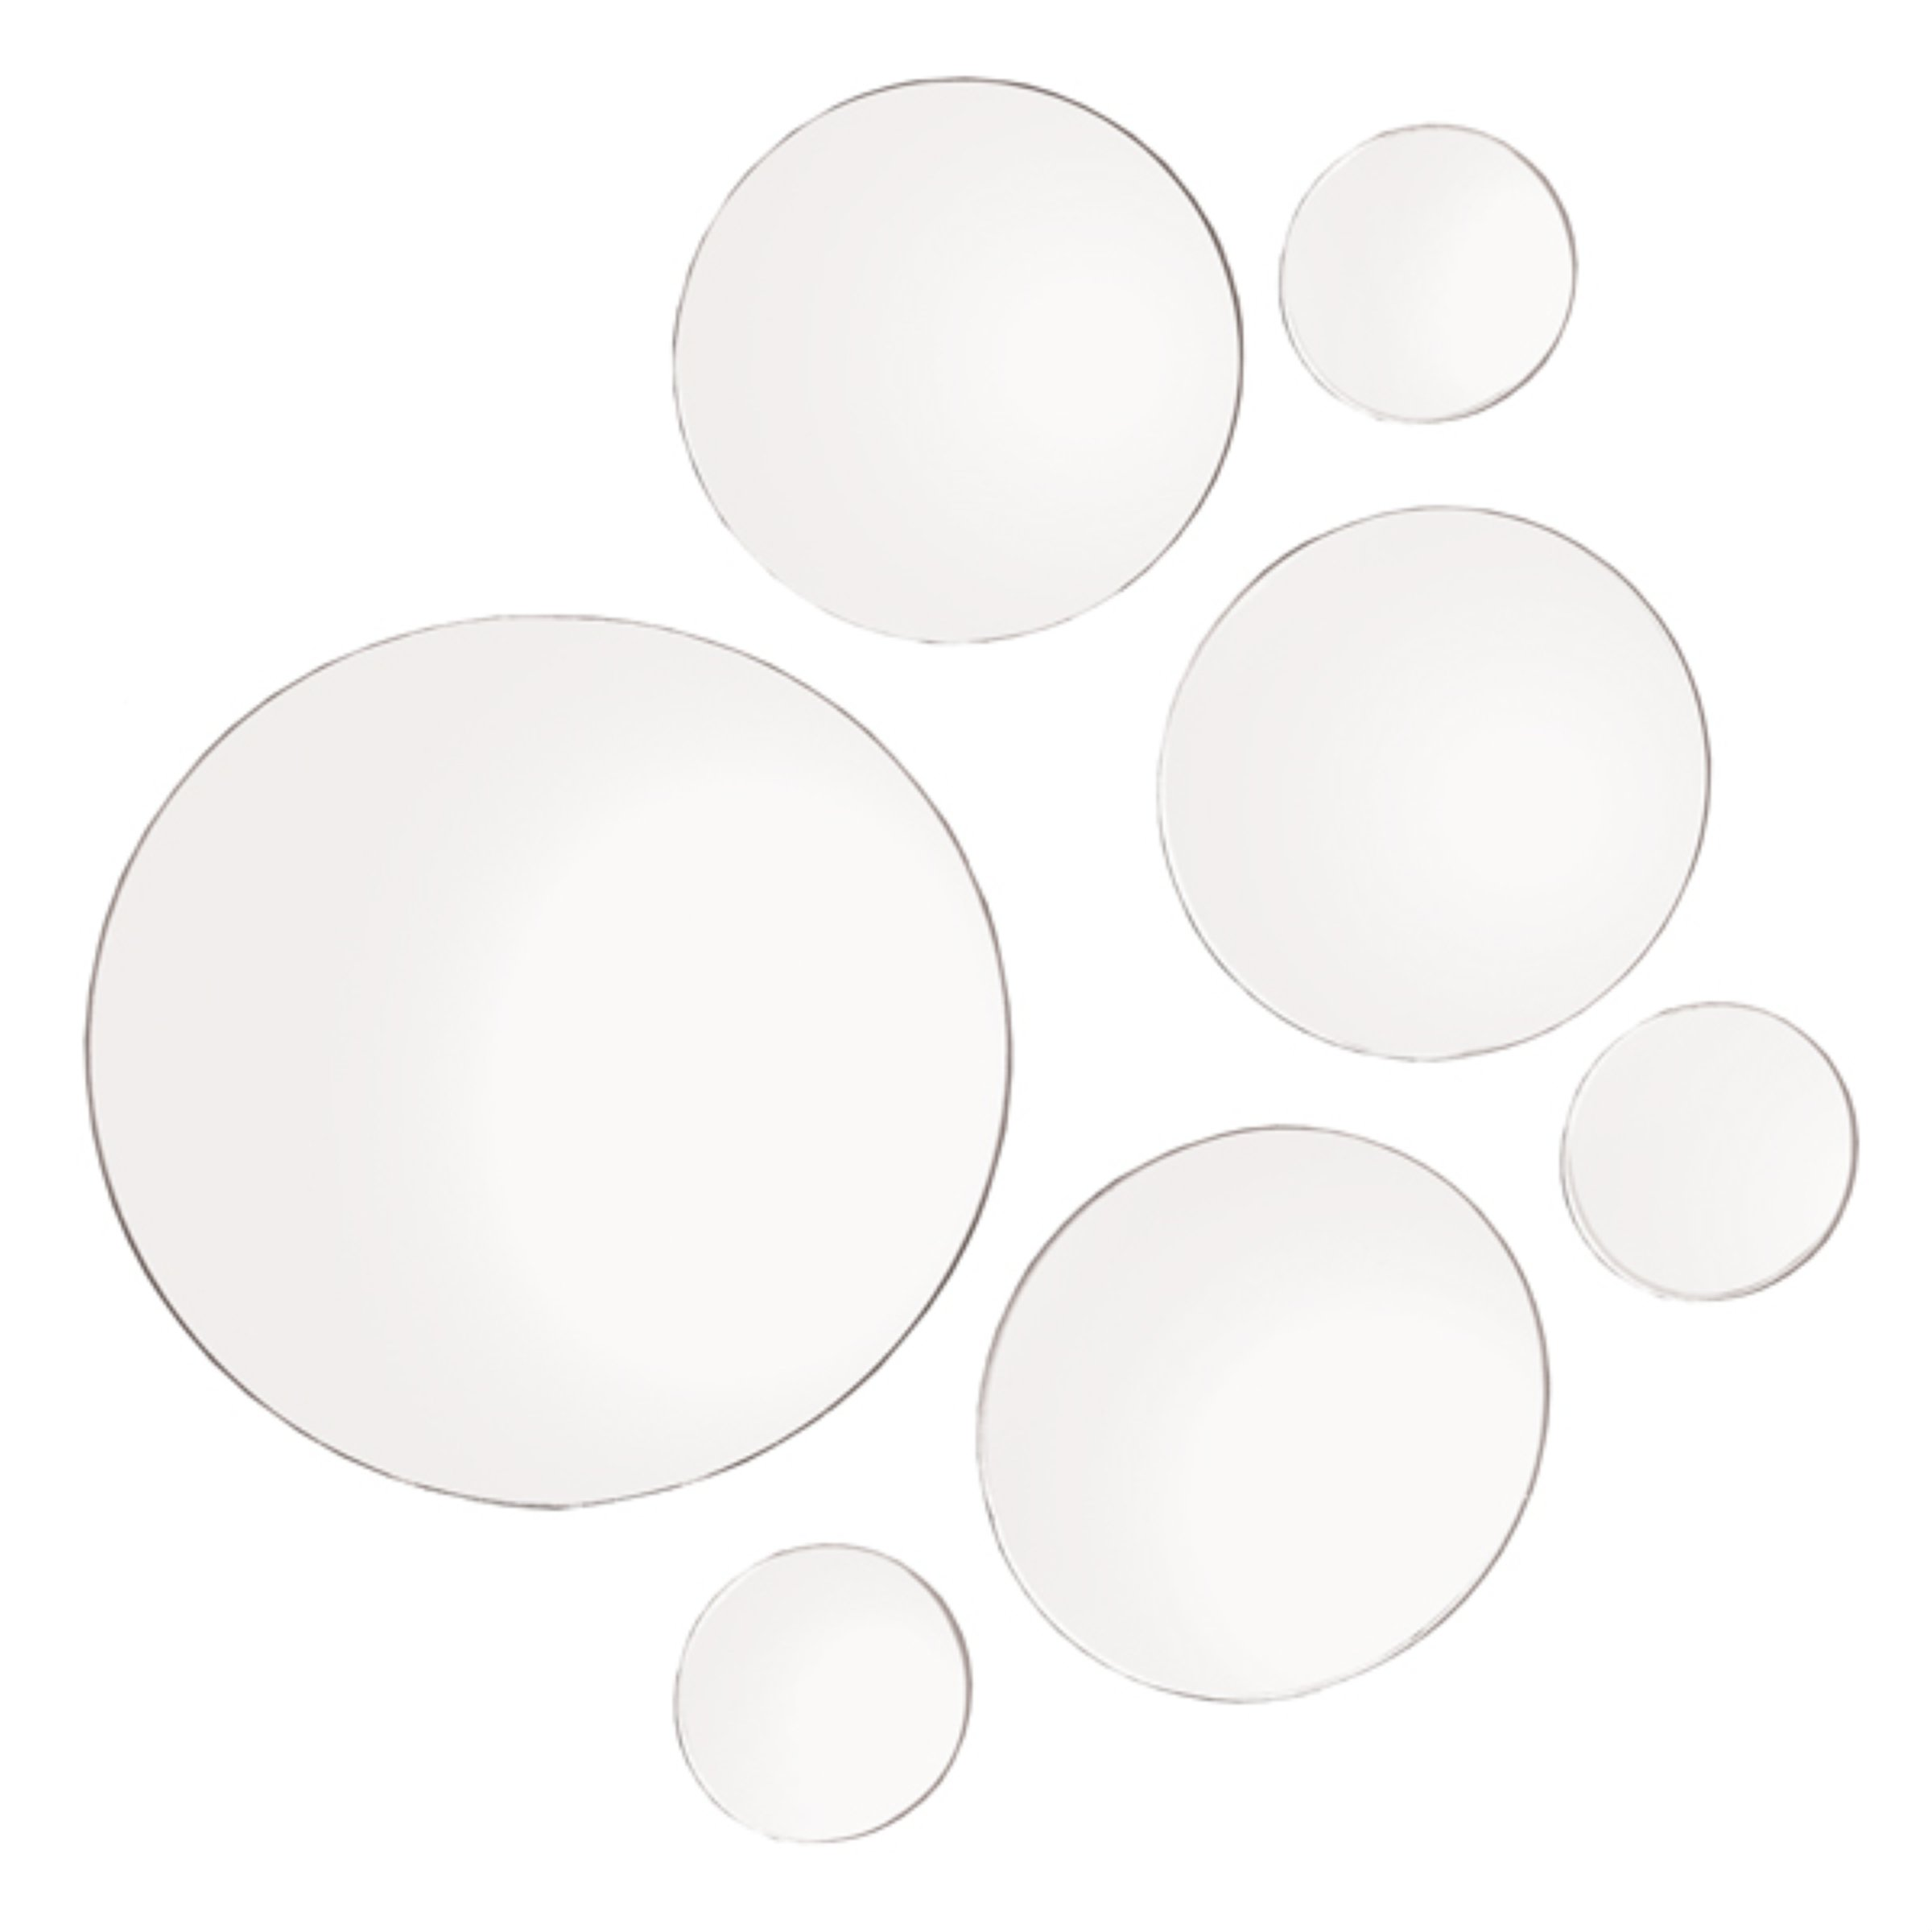 round shape glass 7 mirror set wall mount hanging art deco elements round wall mount mirror set of 7 assorted sizes